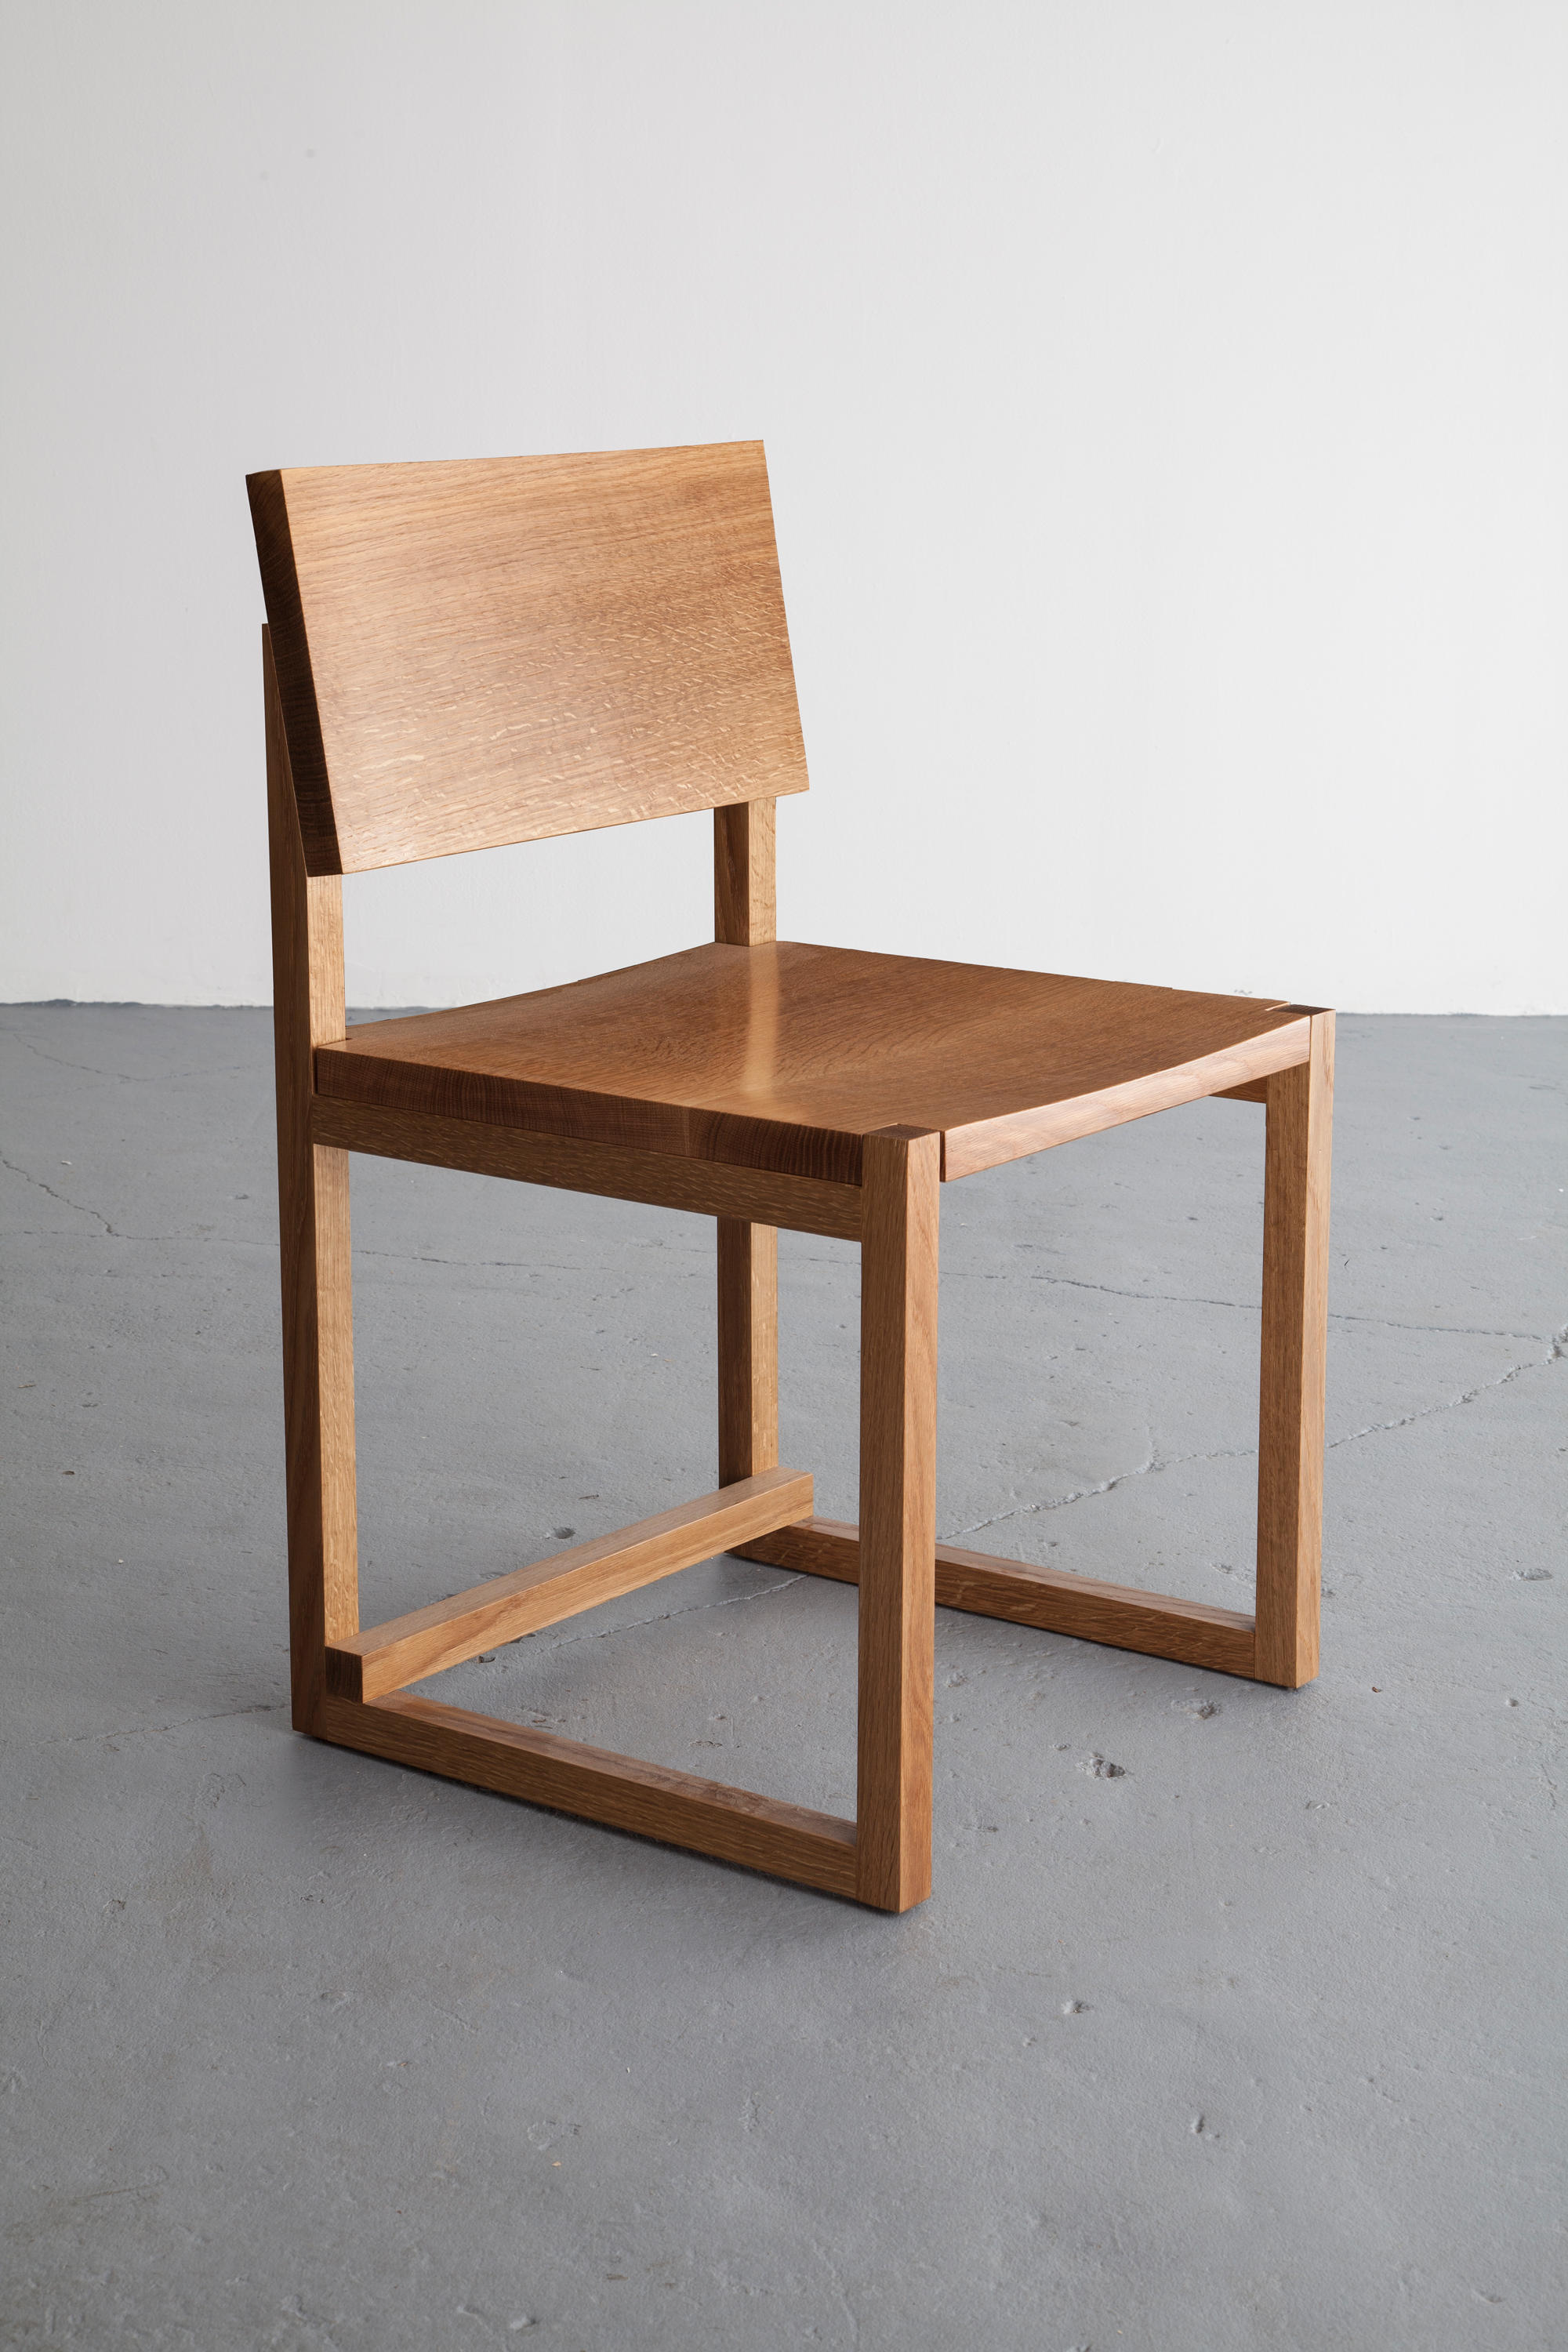 SQ1 DINING CHAIR Restaurant chairs from David Gaynor Design